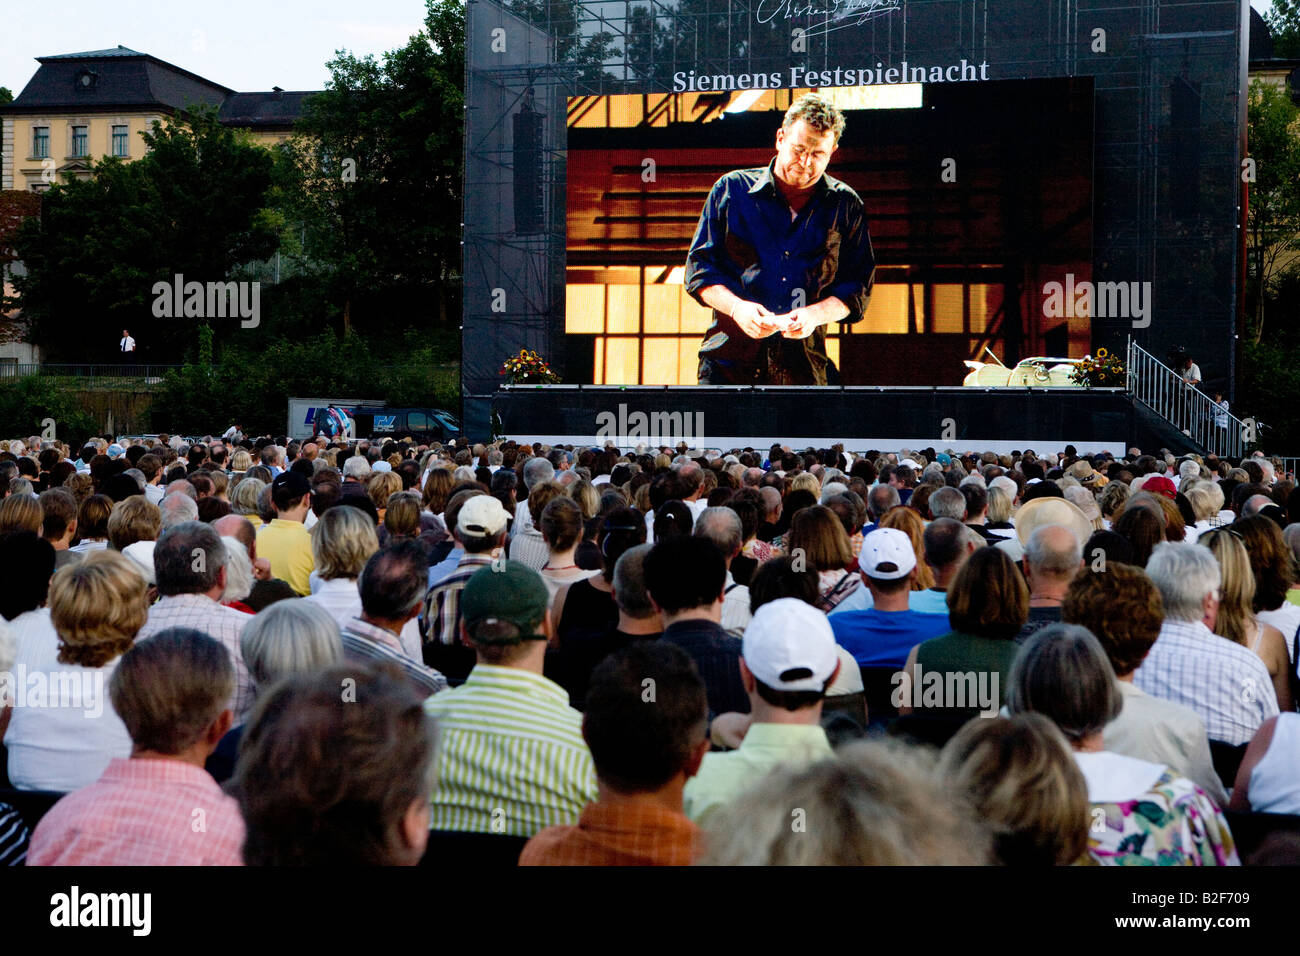 Spectators at public viewing of Richard Wagner opera 'The Mastersingers of Nuremberg' in German city of - Stock Image